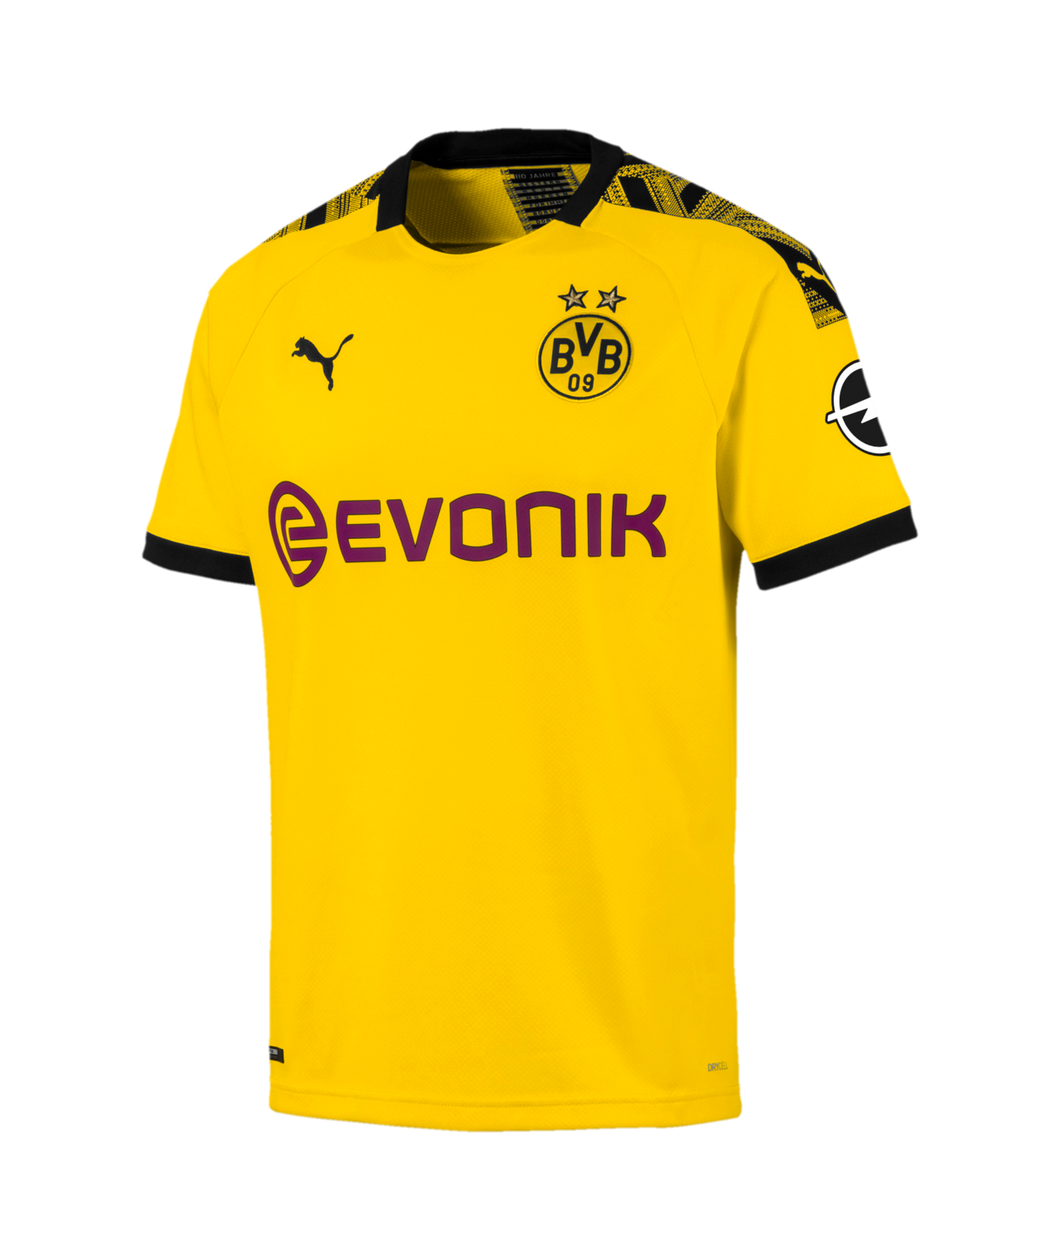 Puma BVB Home Shirt Replica 755737 01